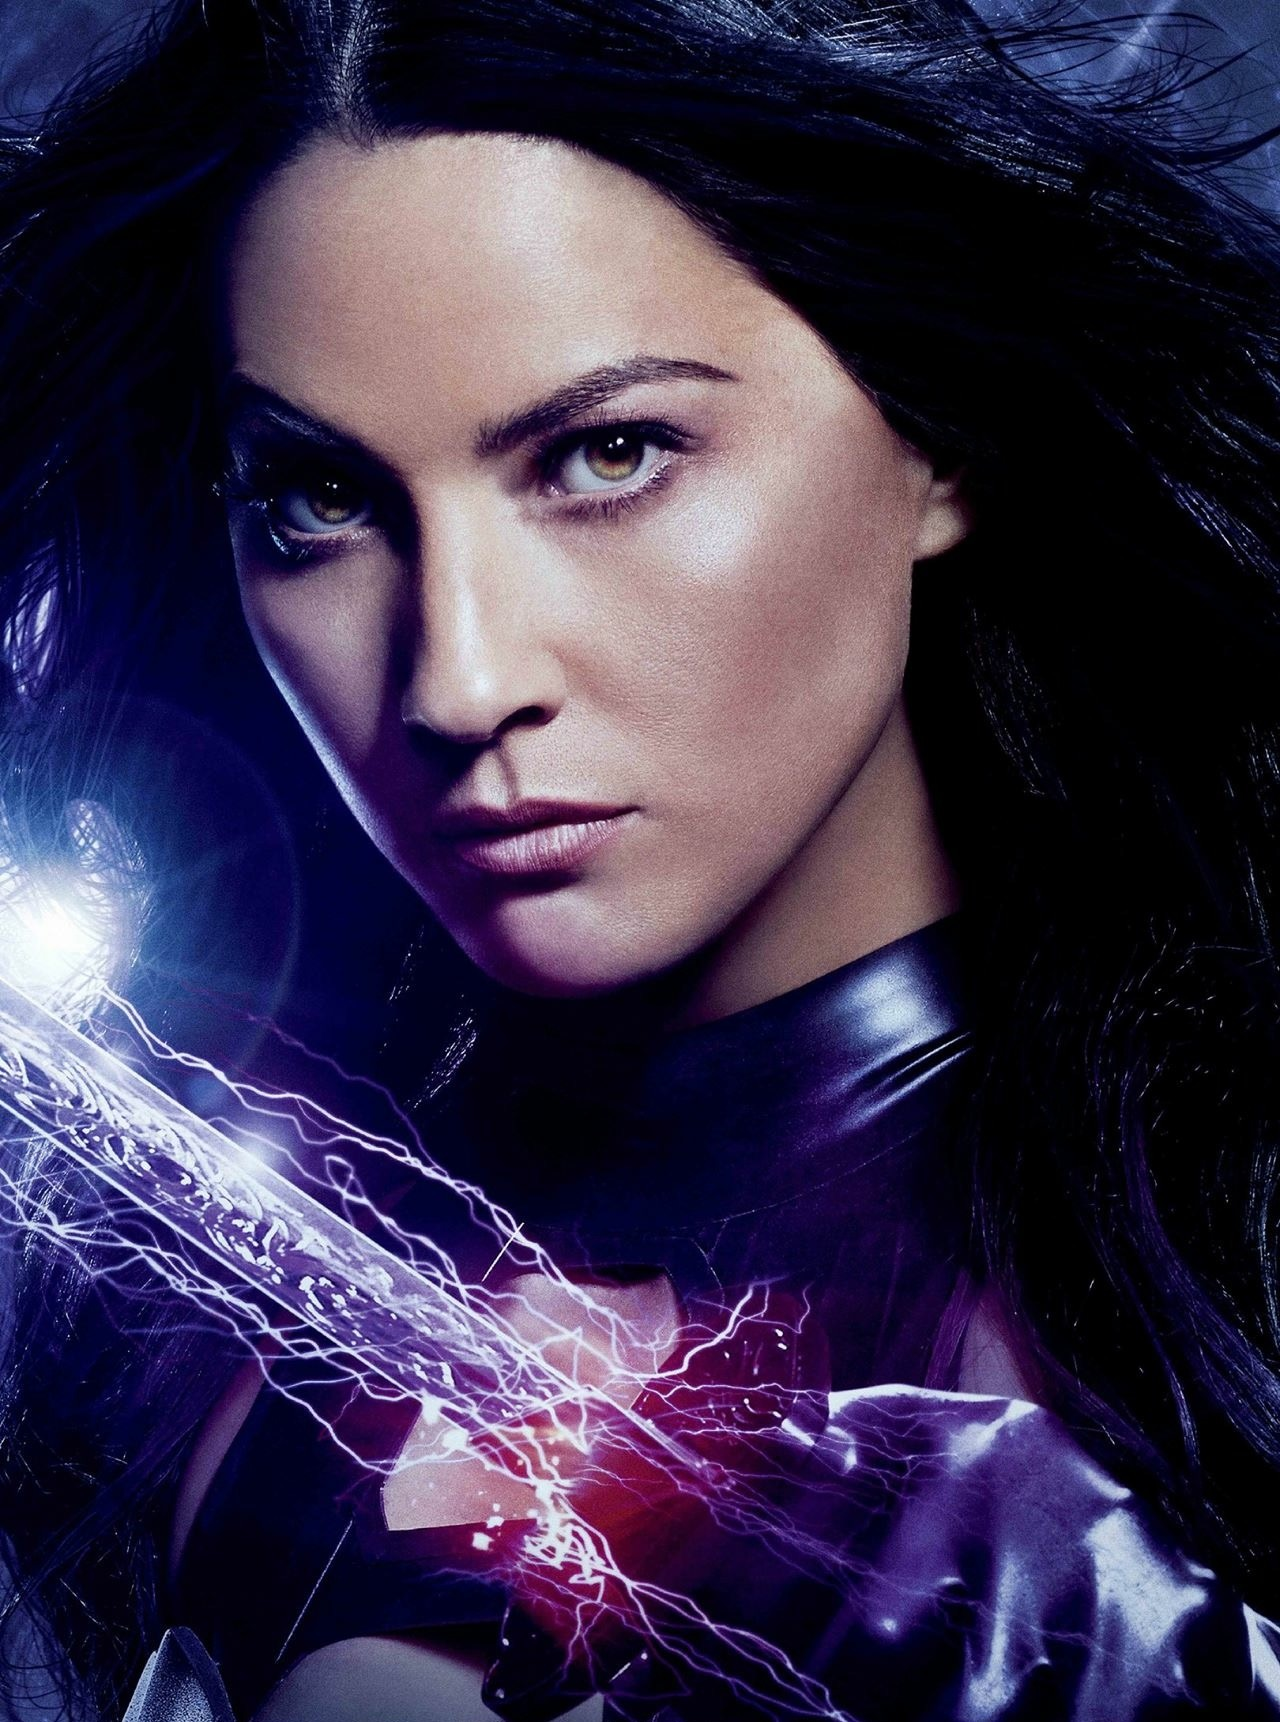 Psylocke | X-Men Movies Wiki | FANDOM powered by Wikia